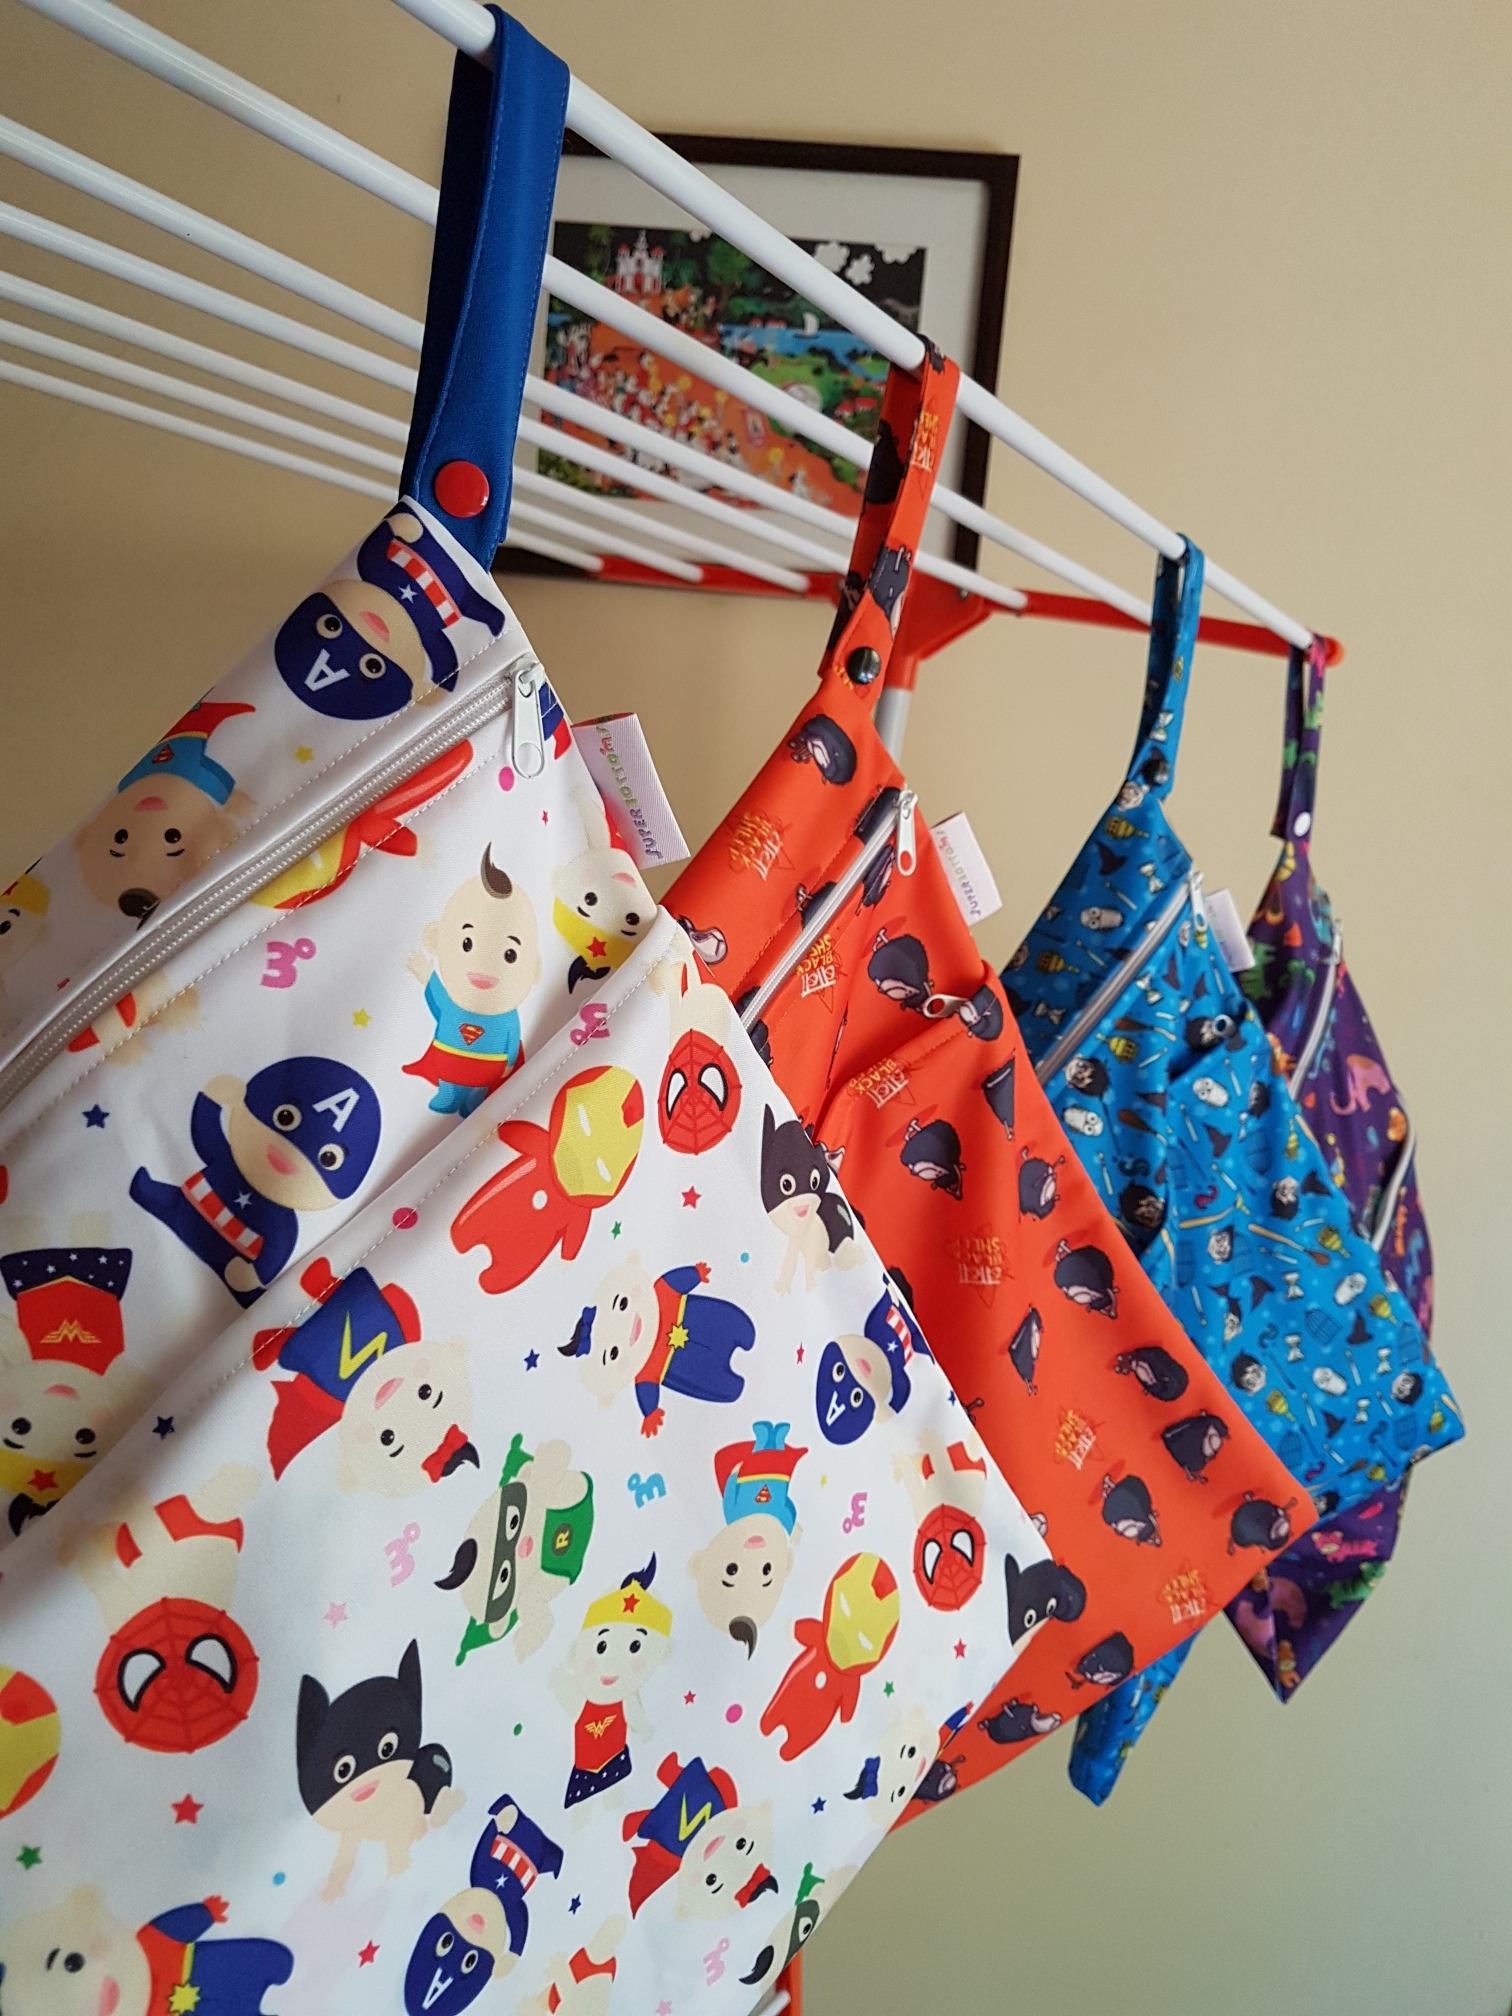 Superbottoms wet bag, wet bags, wetbags, diaper bag, whats in your diaper bag, cloth diaper bag, cloth diapering, cloth diapers india, new mom, mumbai mom